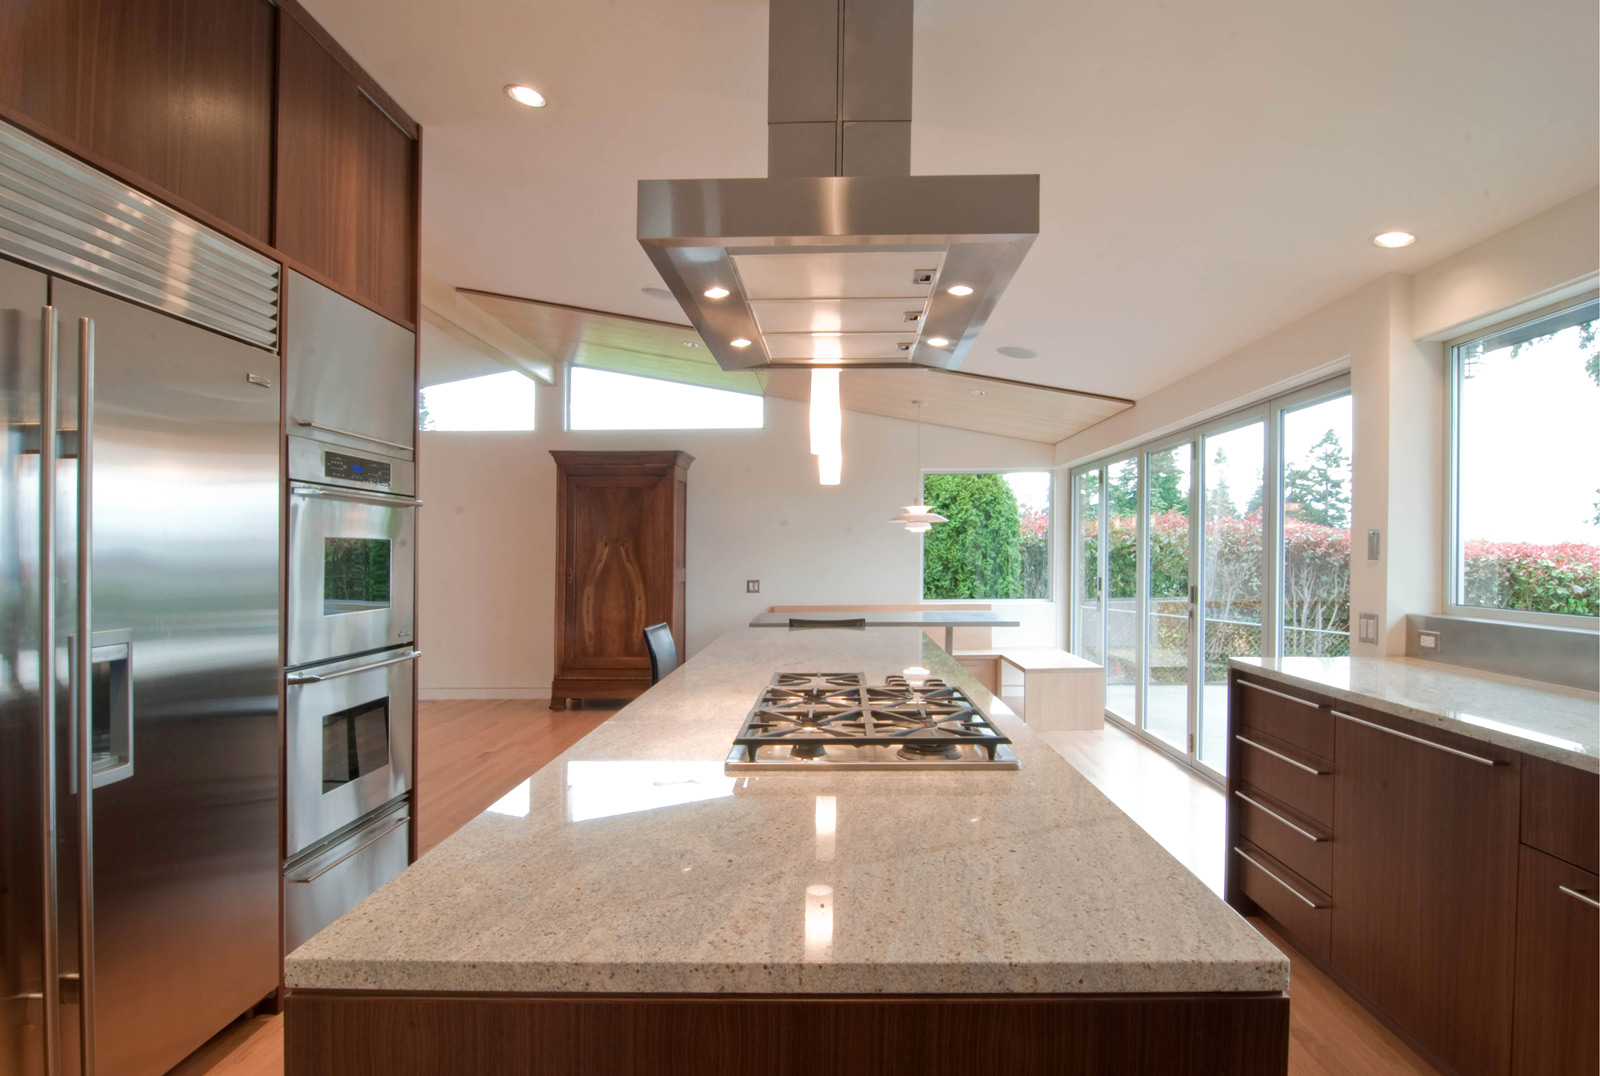 Kitchen Hood Design Strategies For Kitchen Hood Venting Build Blog